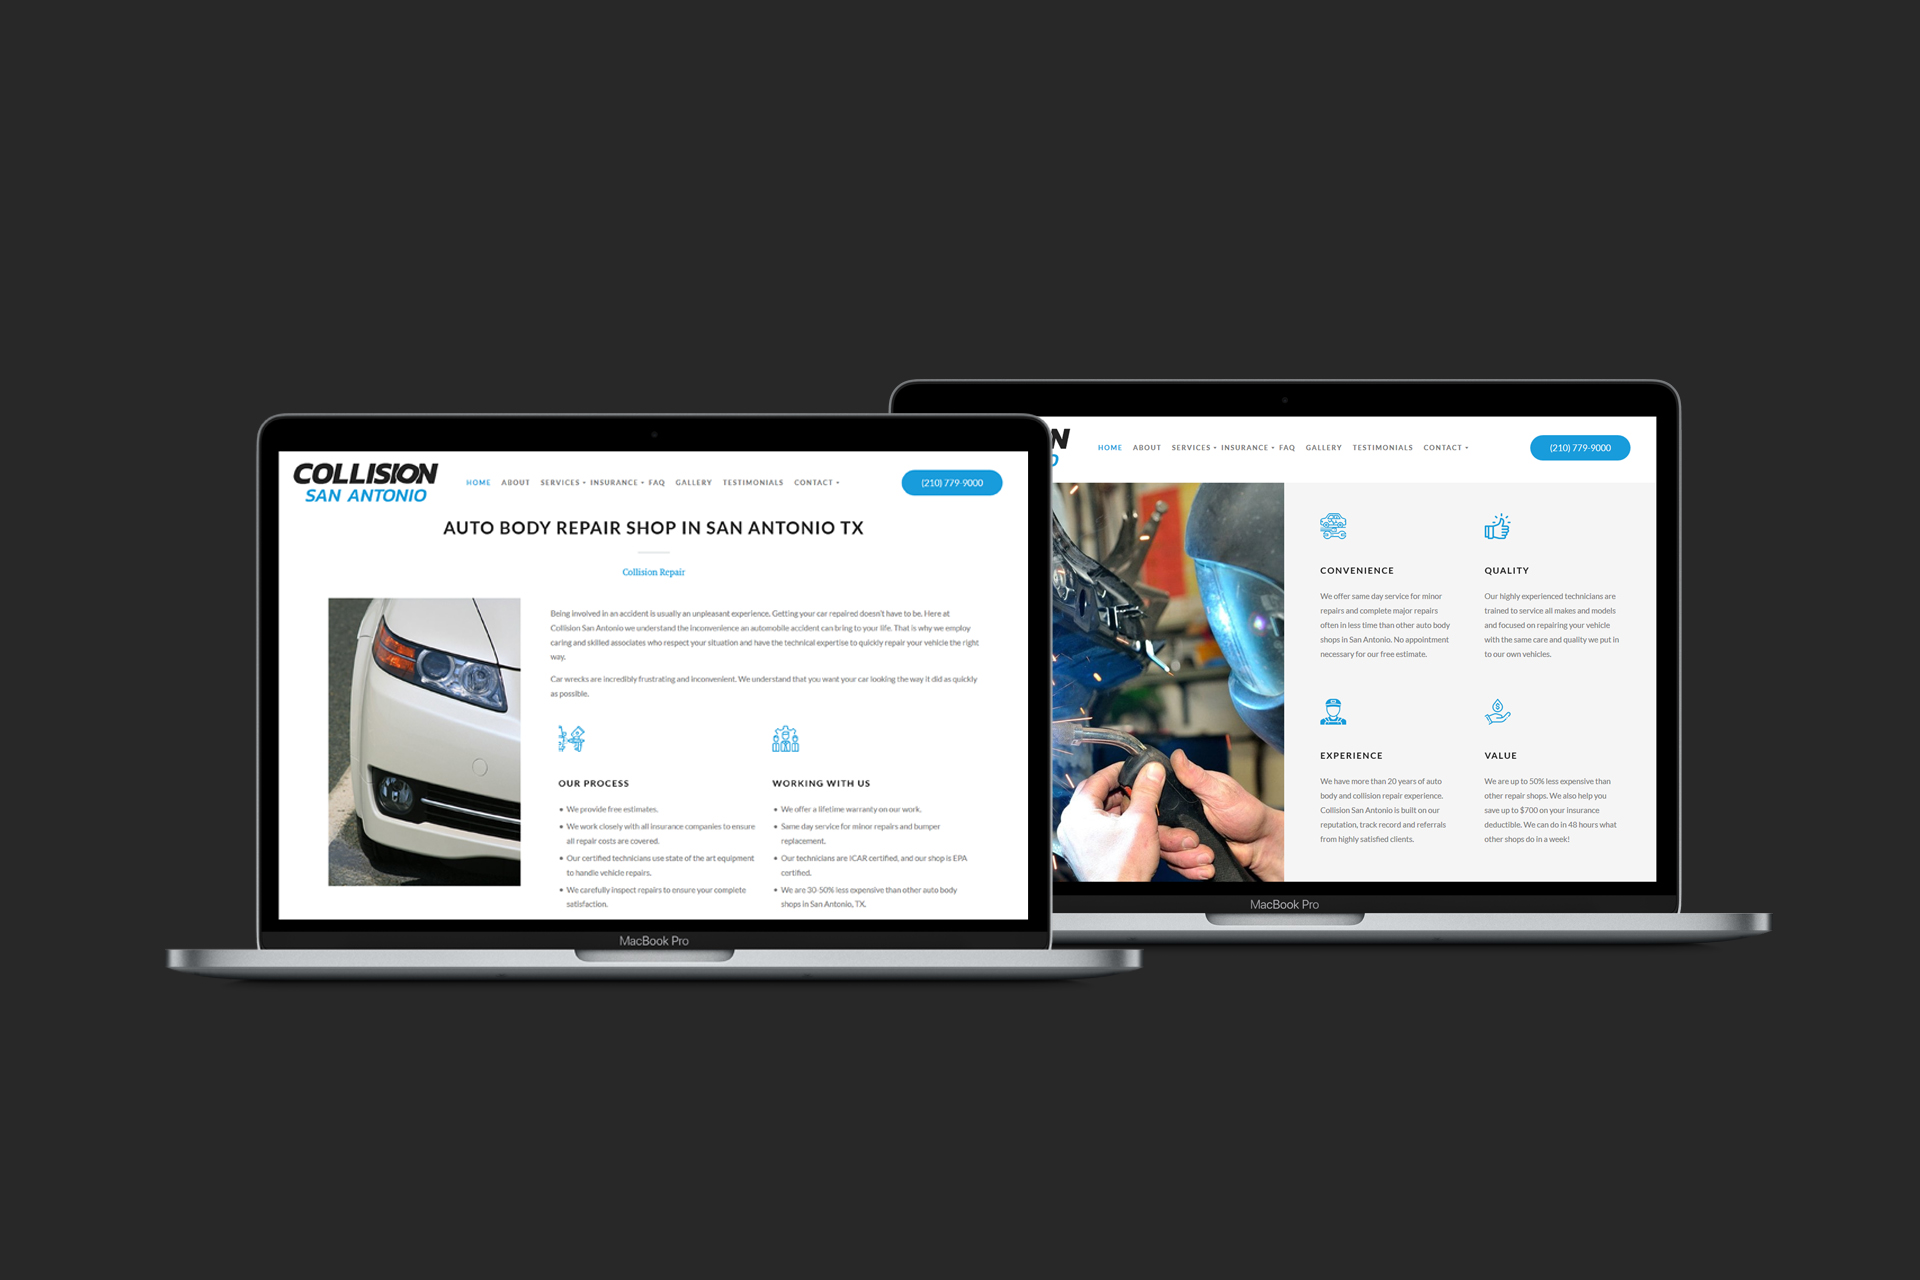 Auto Body Repair Shop Web Design and Development